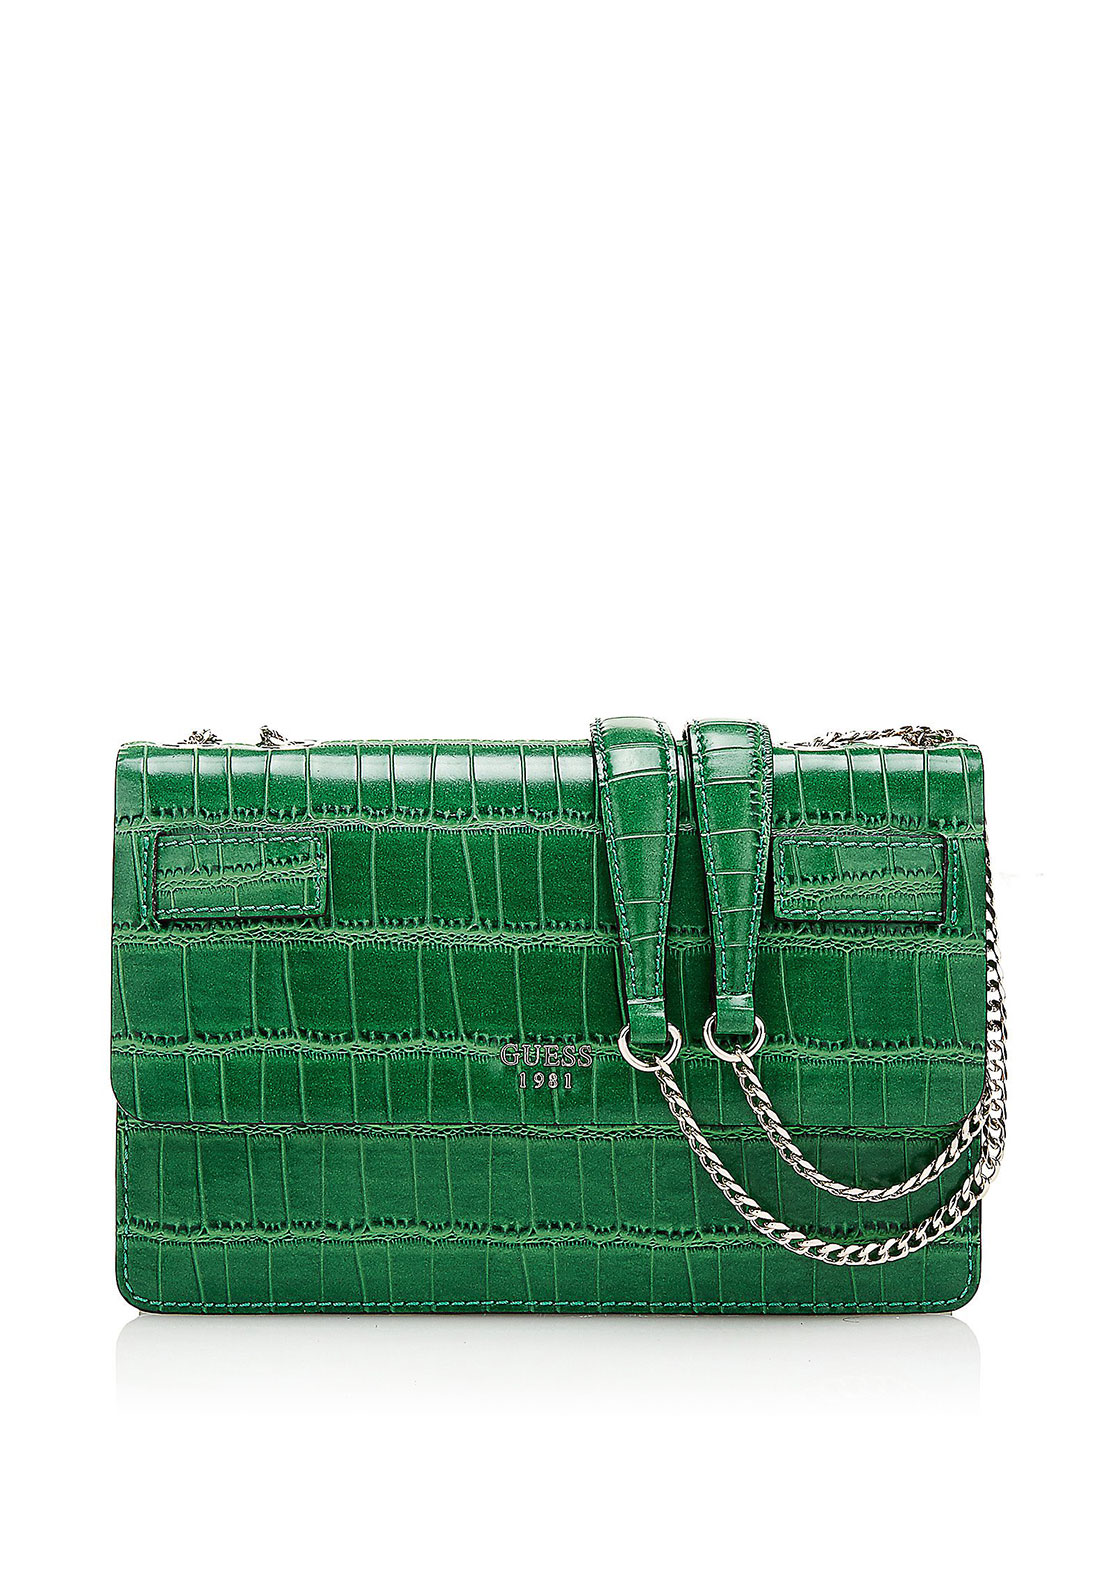 Guess Cate Croc Print Crossbody Bag, Emerald